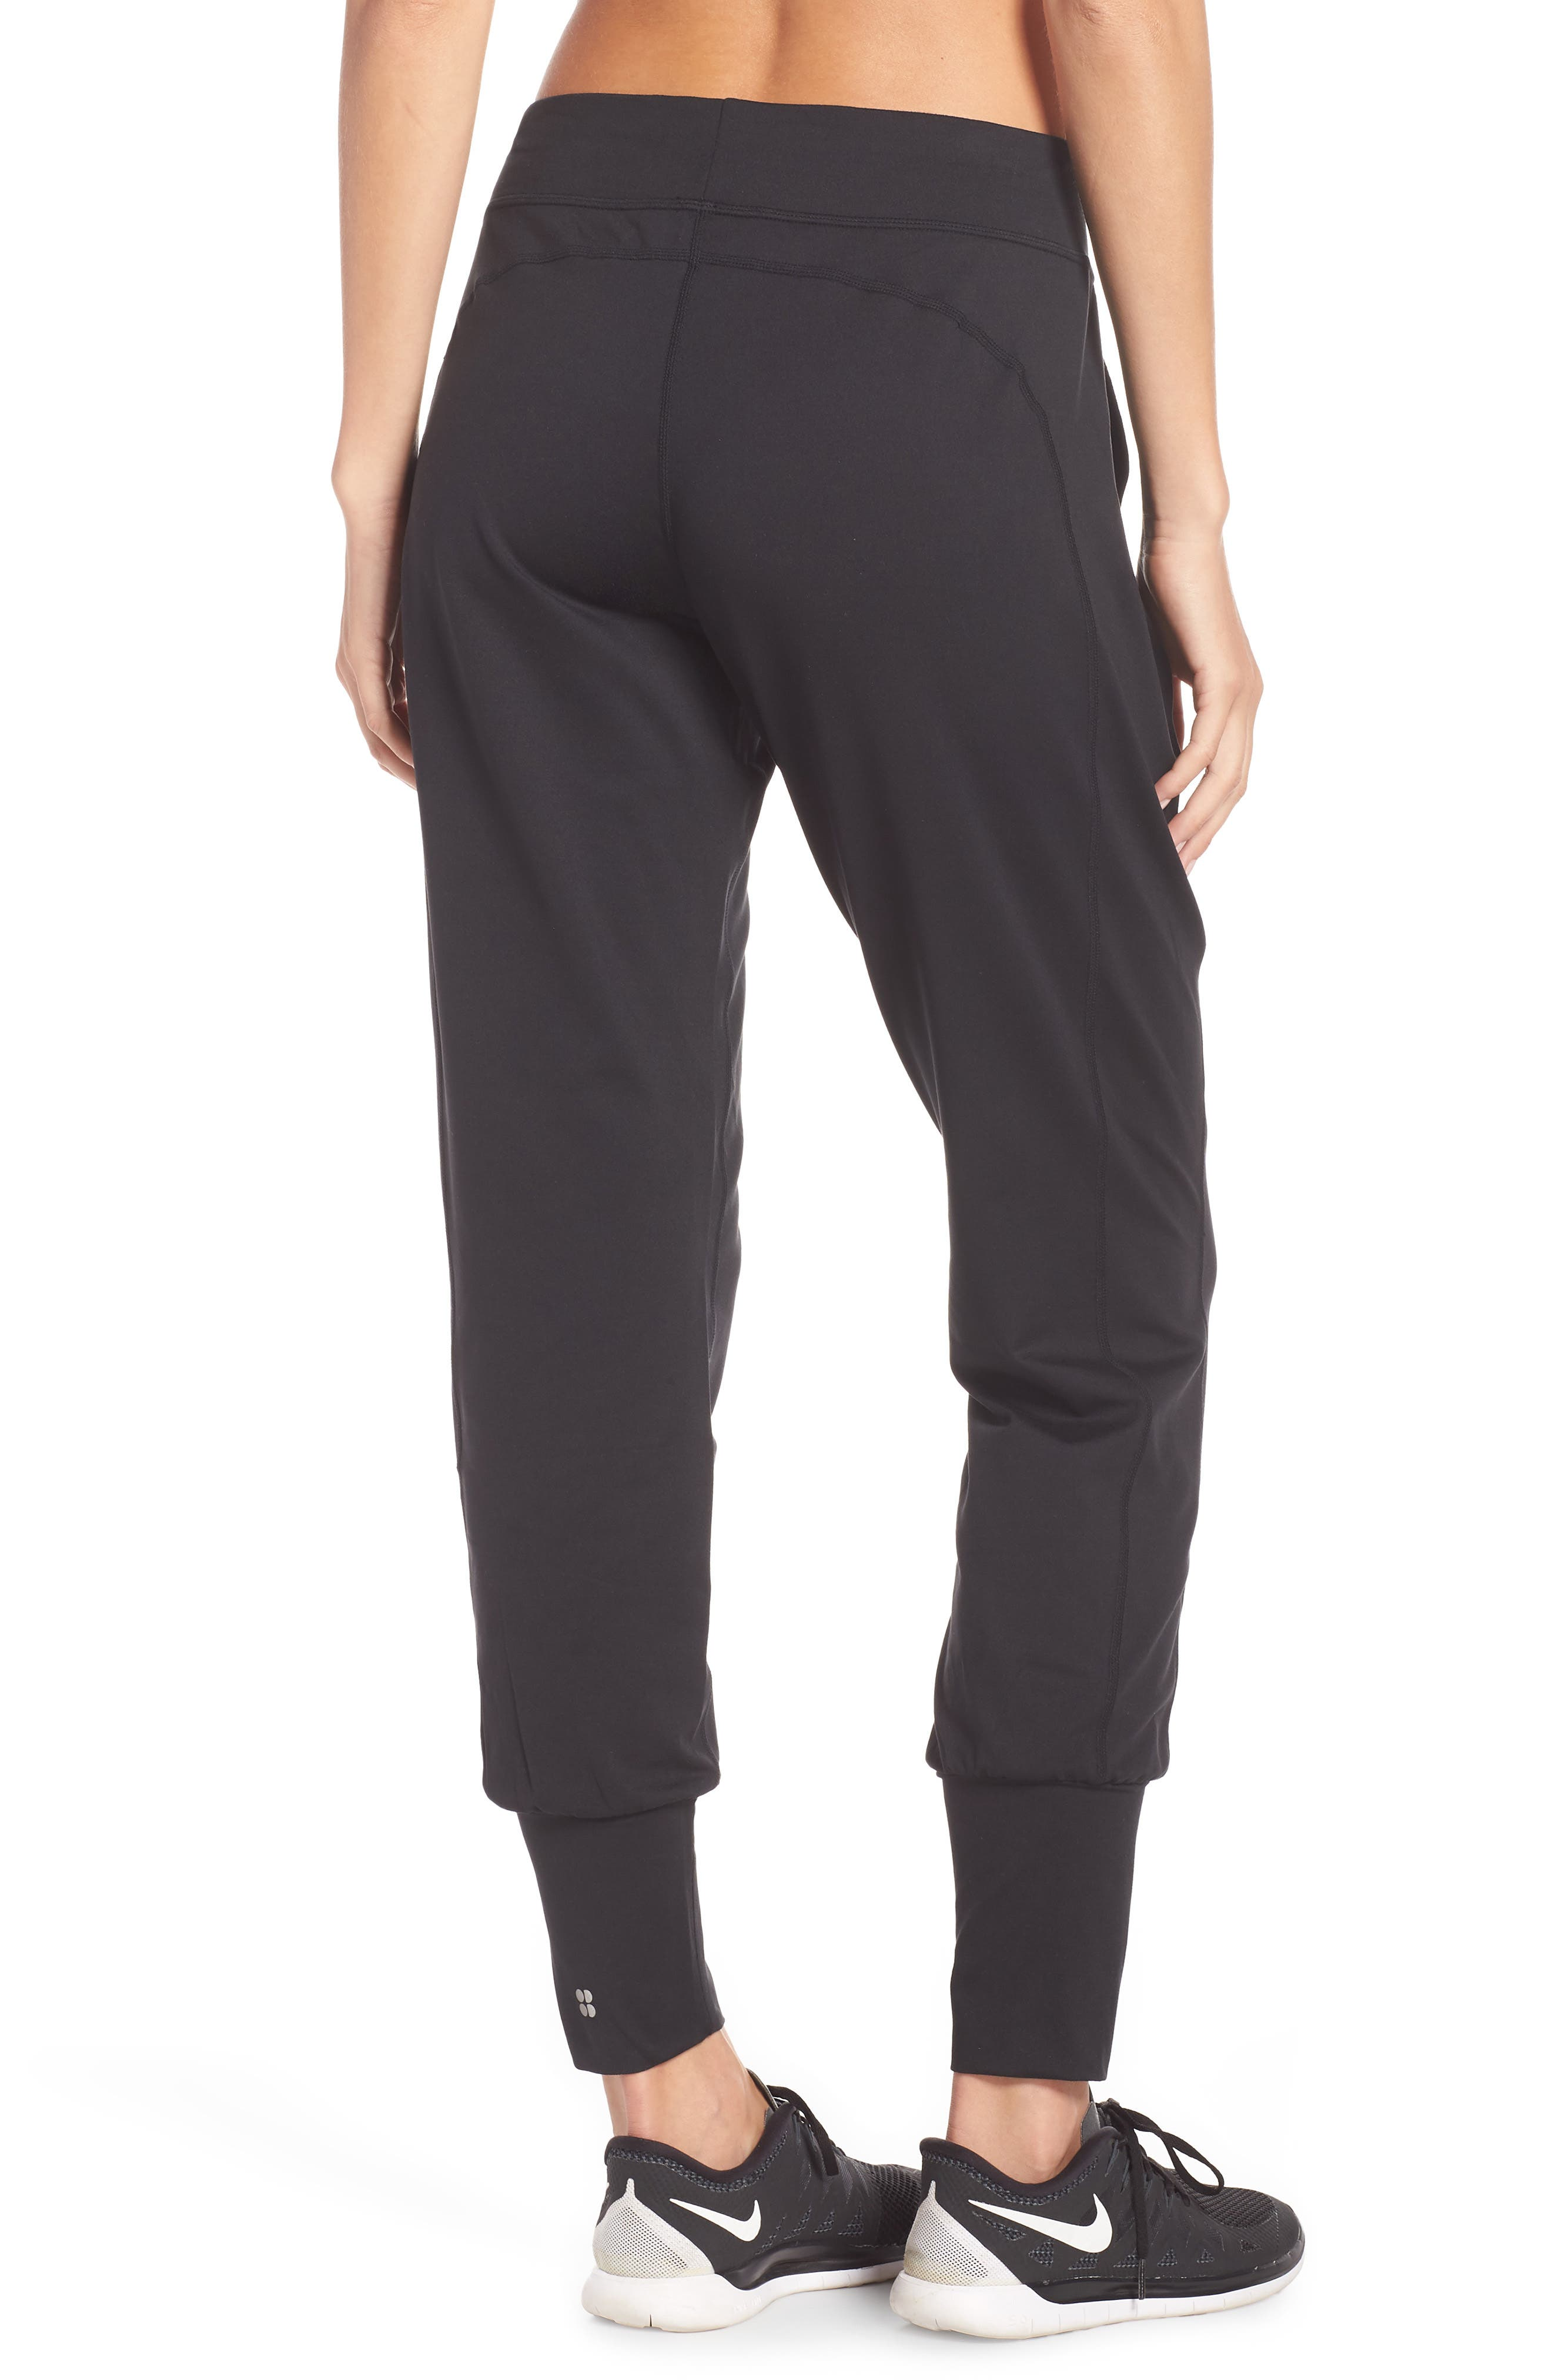 Garudasana Yoga Trousers,                             Alternate thumbnail 2, color,                             BLACK